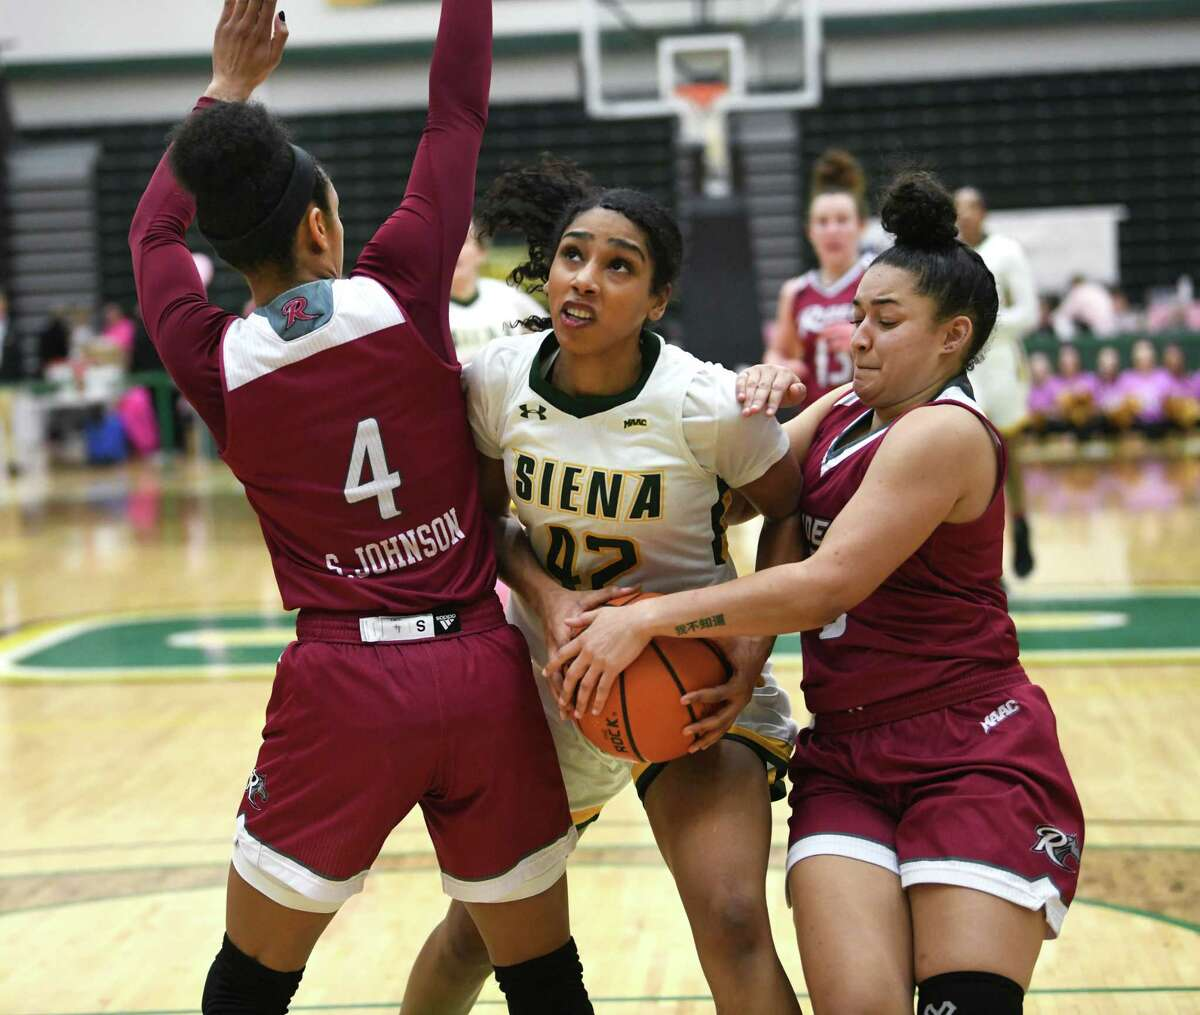 Siena's Sabrina Piper drives to the basket against Rider's Stella Johnson, left, and Amanda Mobley during a game at Siena College on Thursday, Feb. 13, 2020 in Loudonville, N.Y. (Lori Van Buren/Times Union)